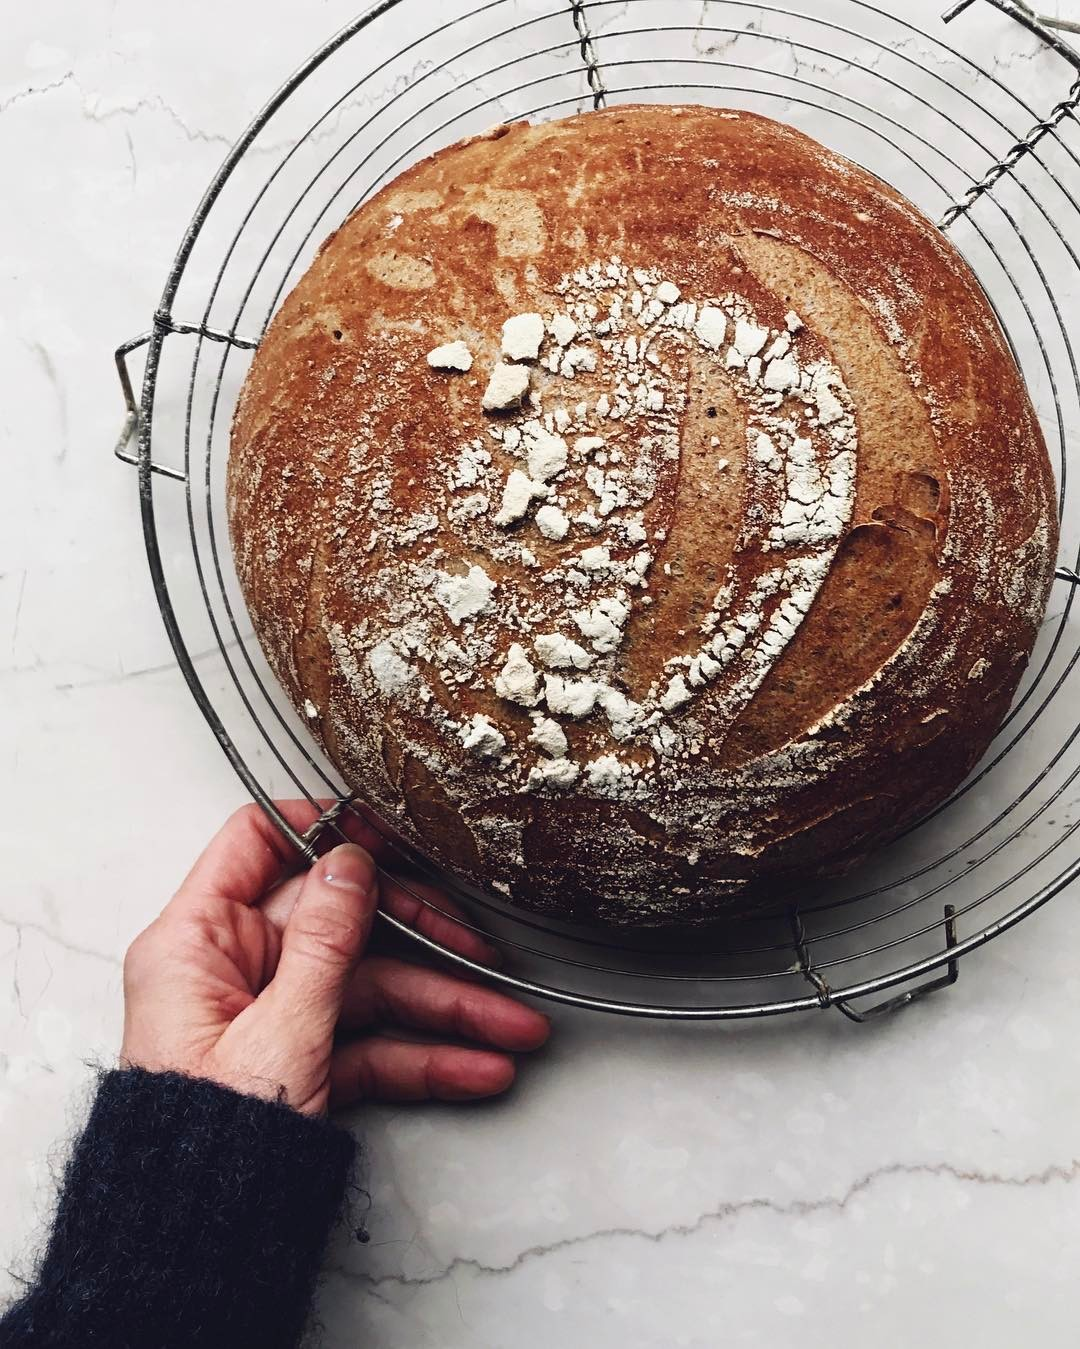 Sourdough Boule by Aran Goyoaga for Conscious by Chloé